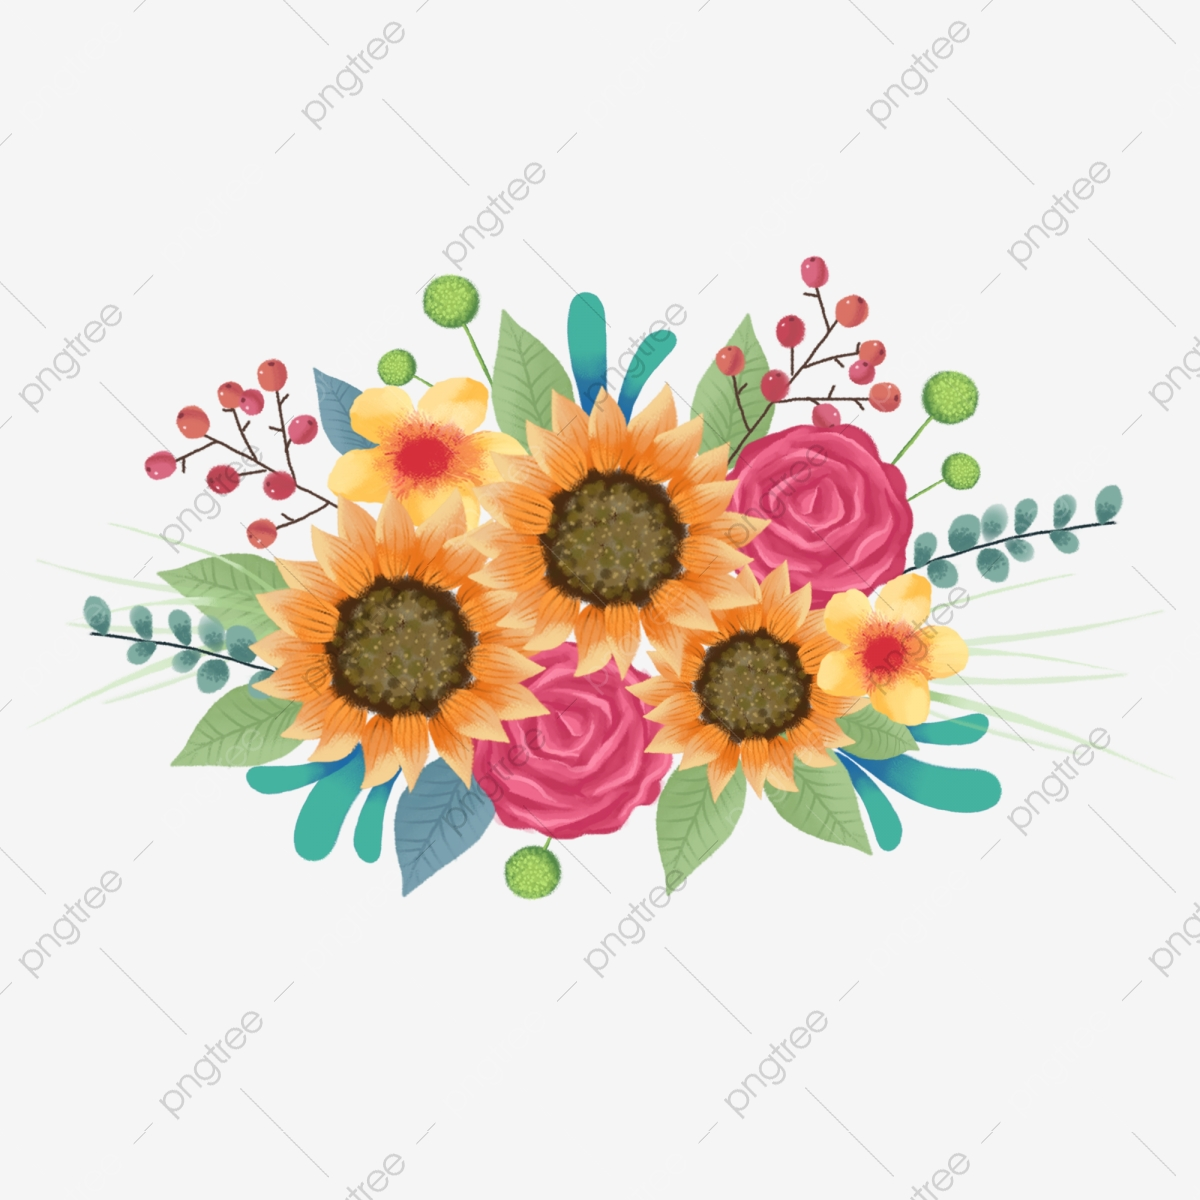 Hand Painted Fresh And Beautiful Cartoon Flower Plant Bouquet Hand Painted Flower Flowers Png Transparent Clipart Image And Psd File For Free Download